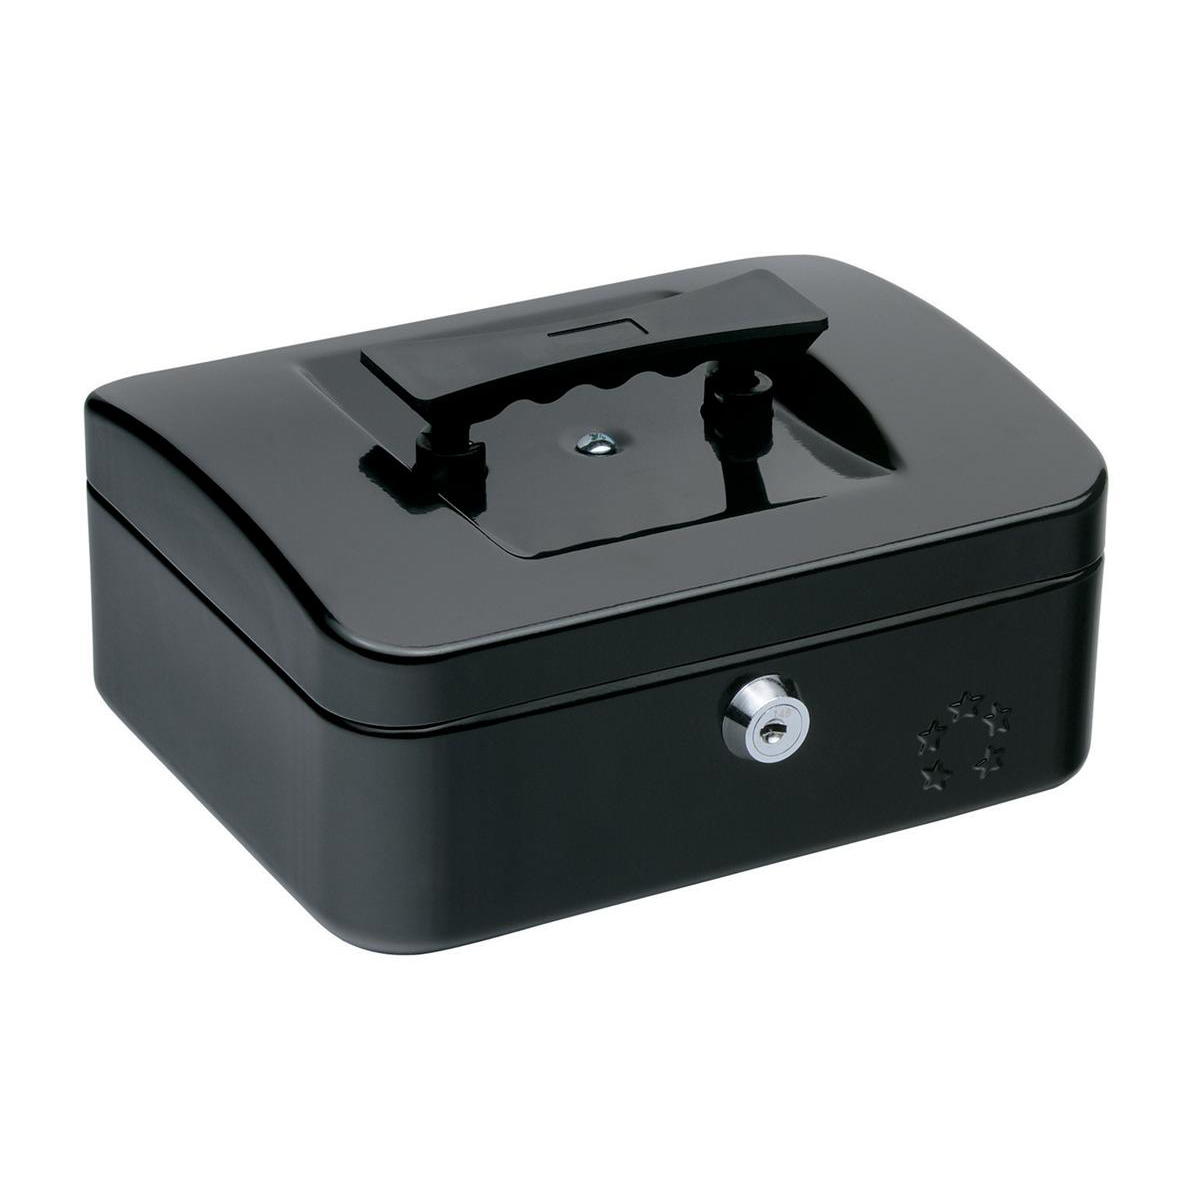 Cash 5 Star Facilities Cash Box with 5-compartment Tray Steel Spring Lock 8 Inch W200xD160xH70mm Black